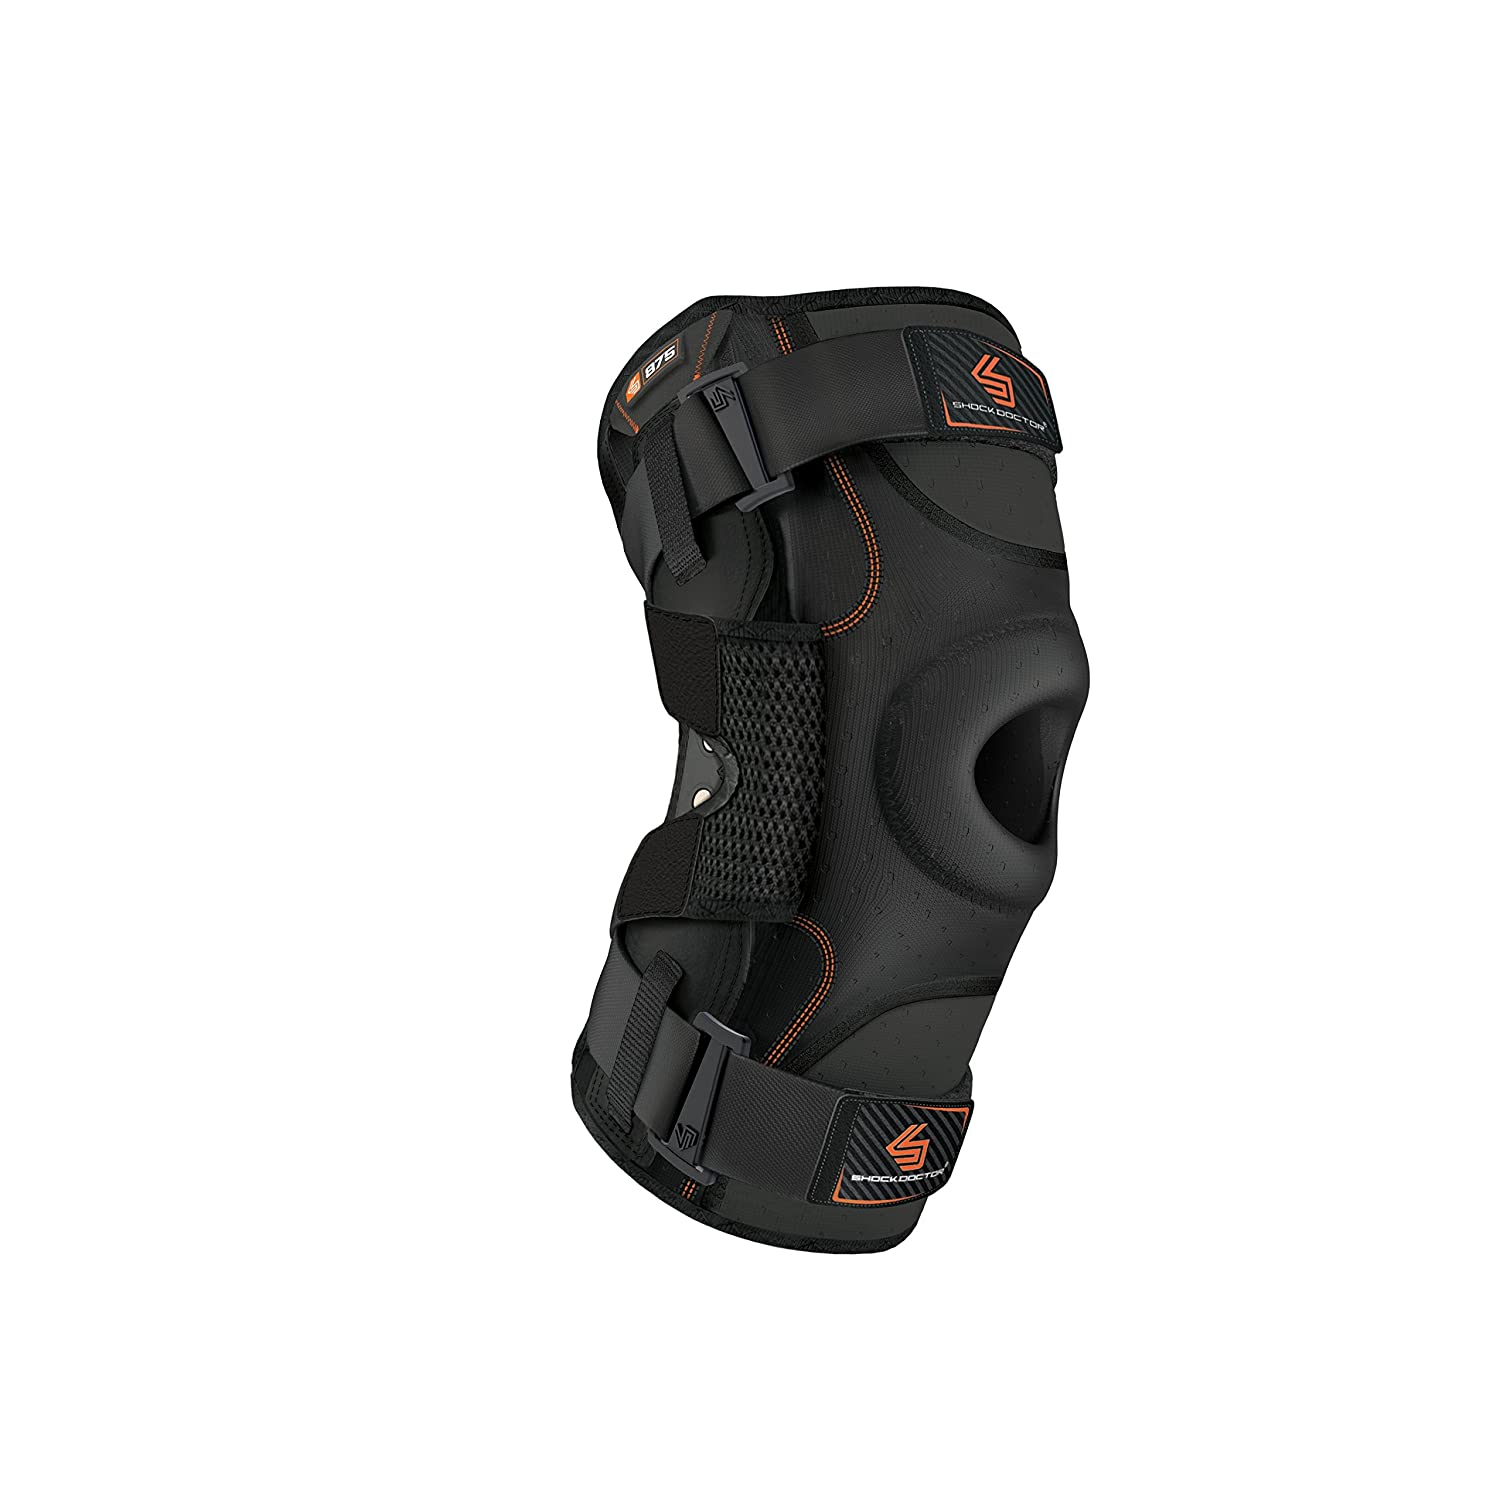 Shock Doctor Knee Brace, Knee Support for Stability, ACL/PCL Injuries, Patella Support, Prevent Hyperextension, Meniscus Injuries, Ligament Sprains for Men & Women, Sold as Single Unit (1)